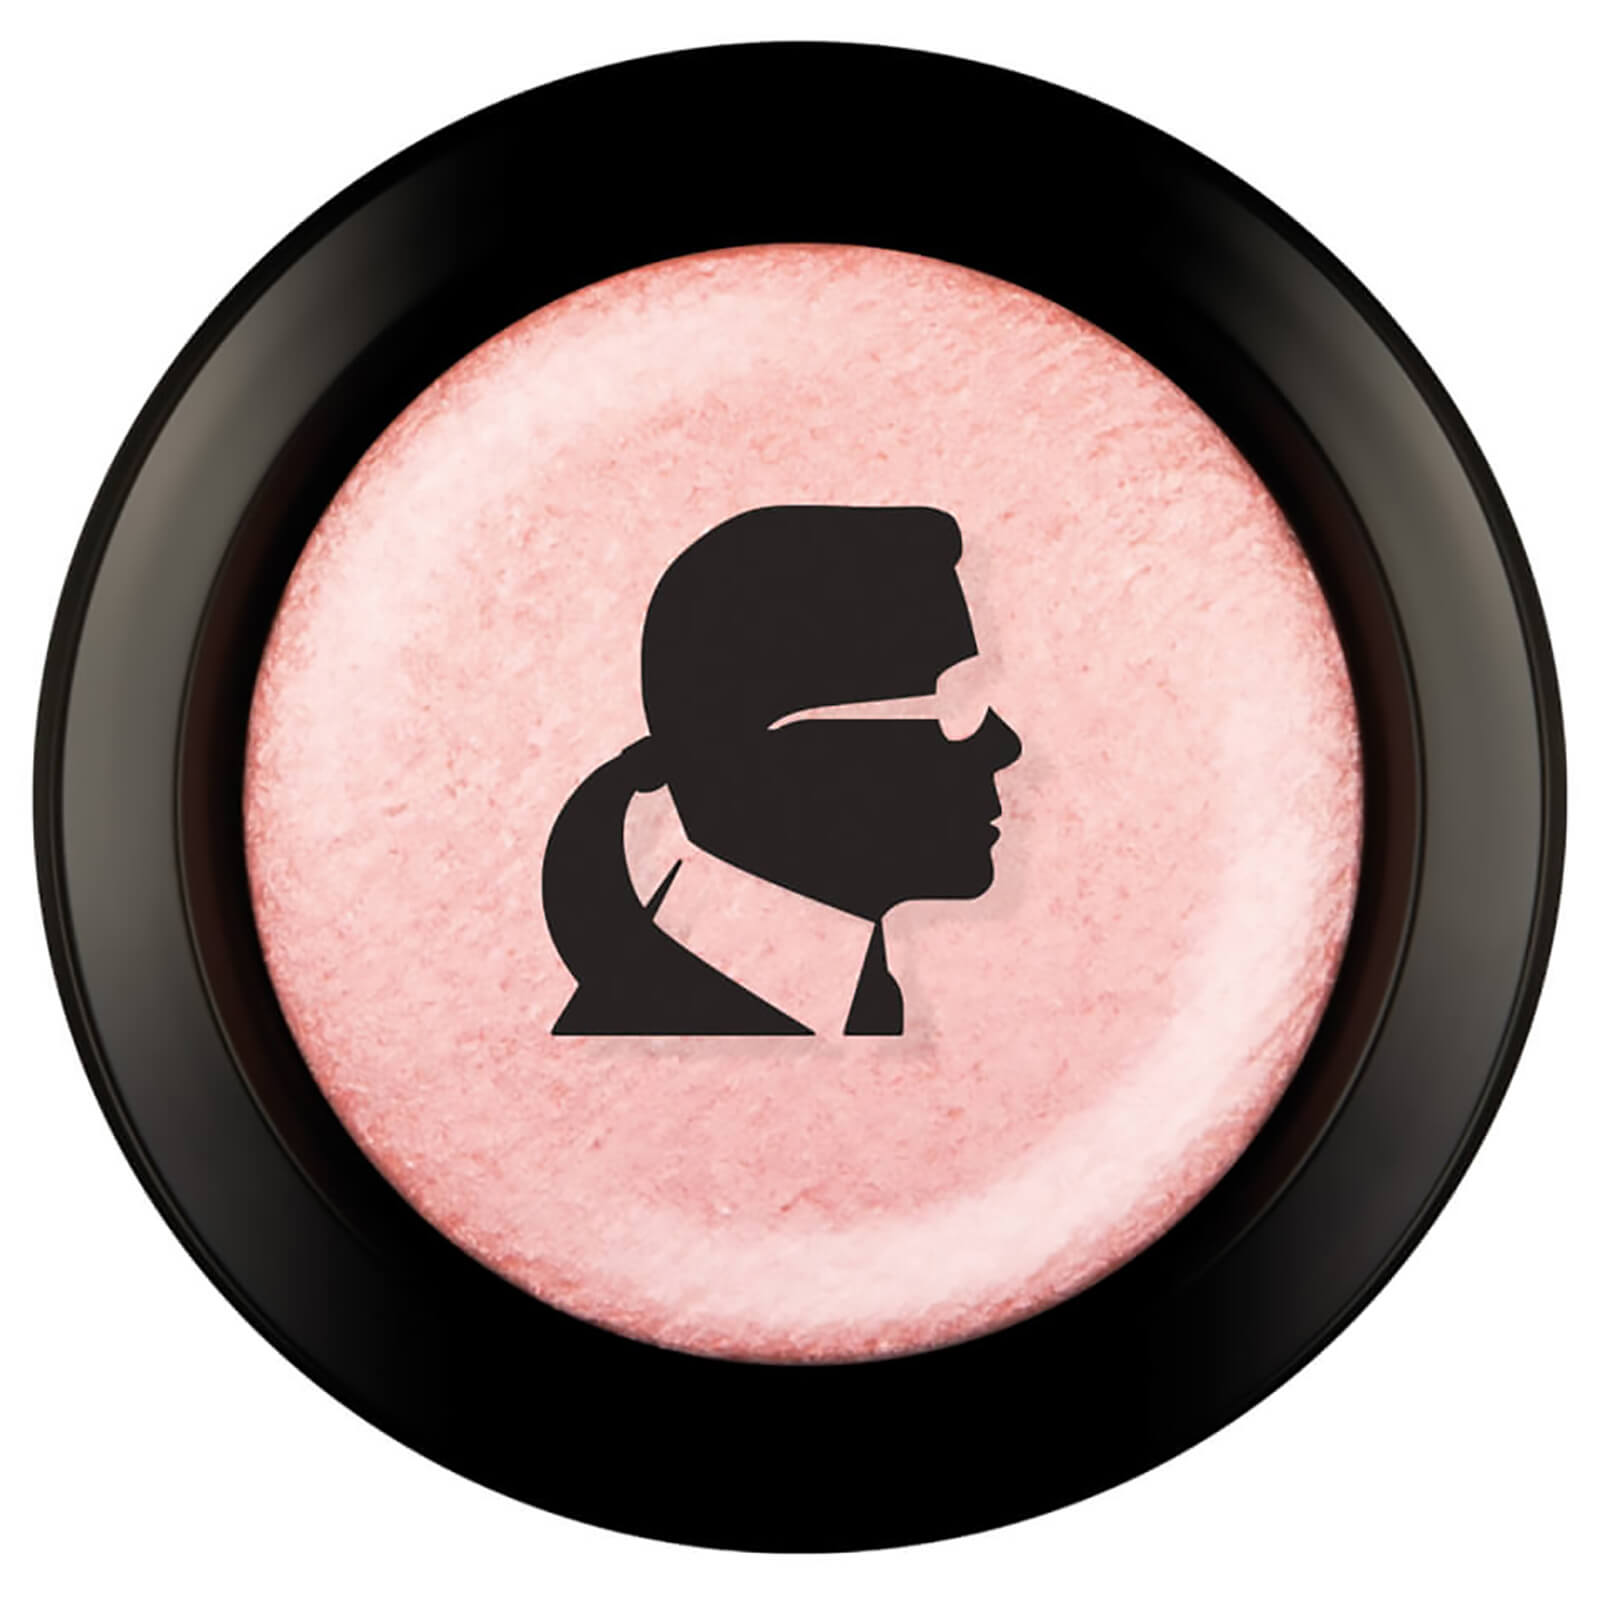 Model CO x Karl Lagerfeld Baked Blush by Model Co #21